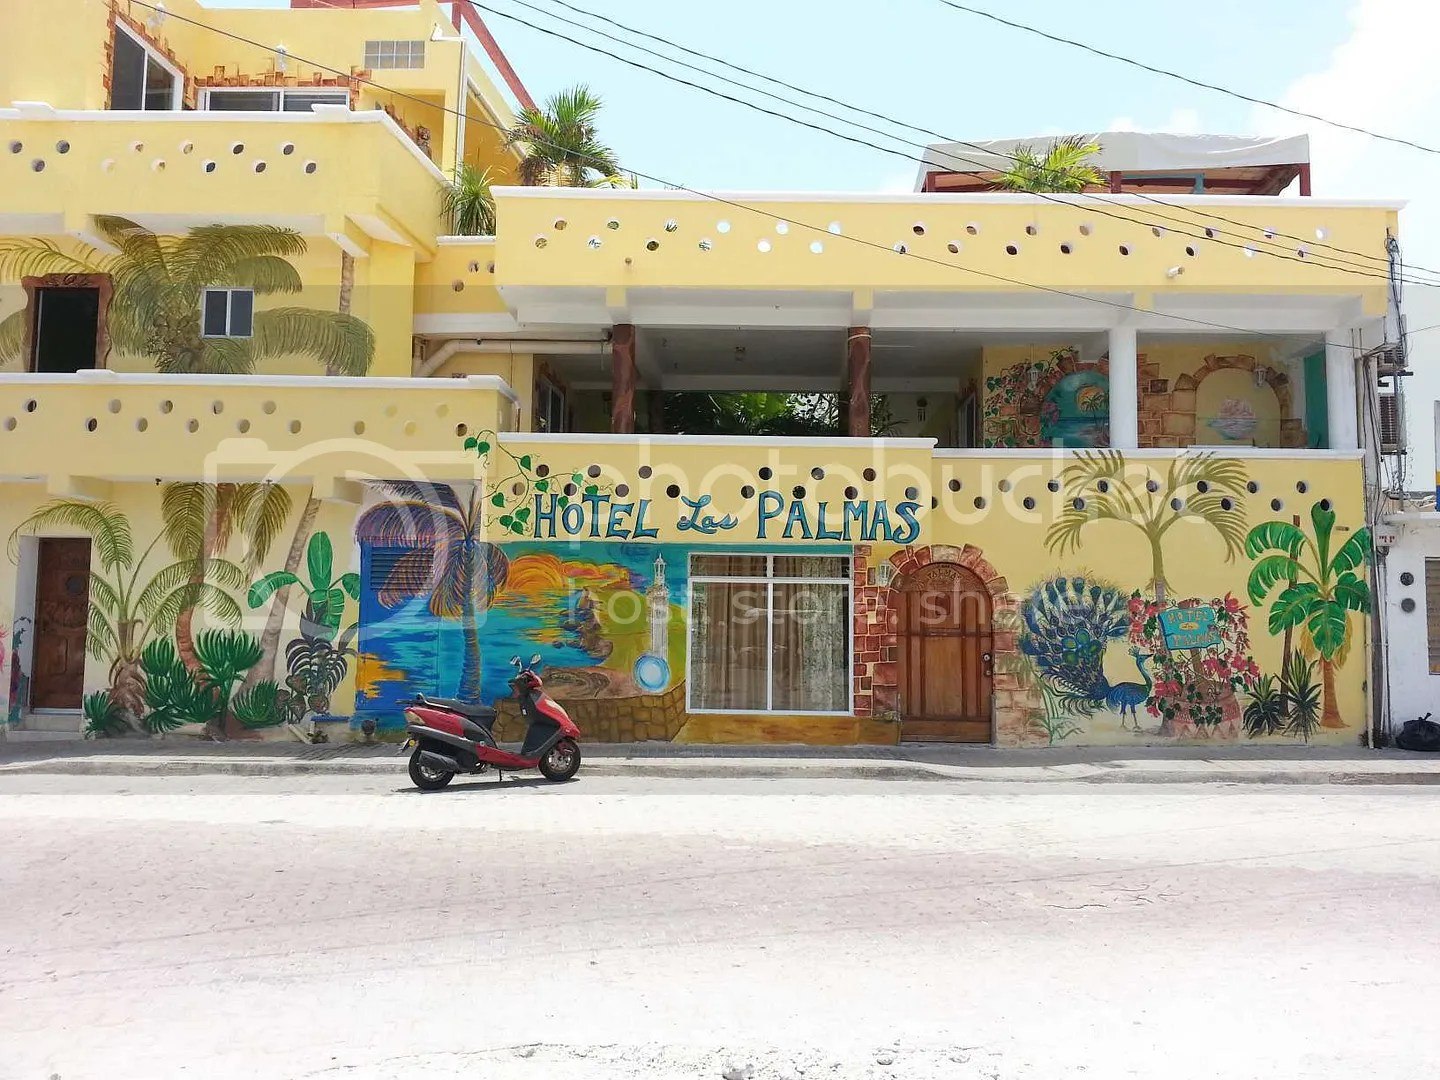 Another Mural in Isla